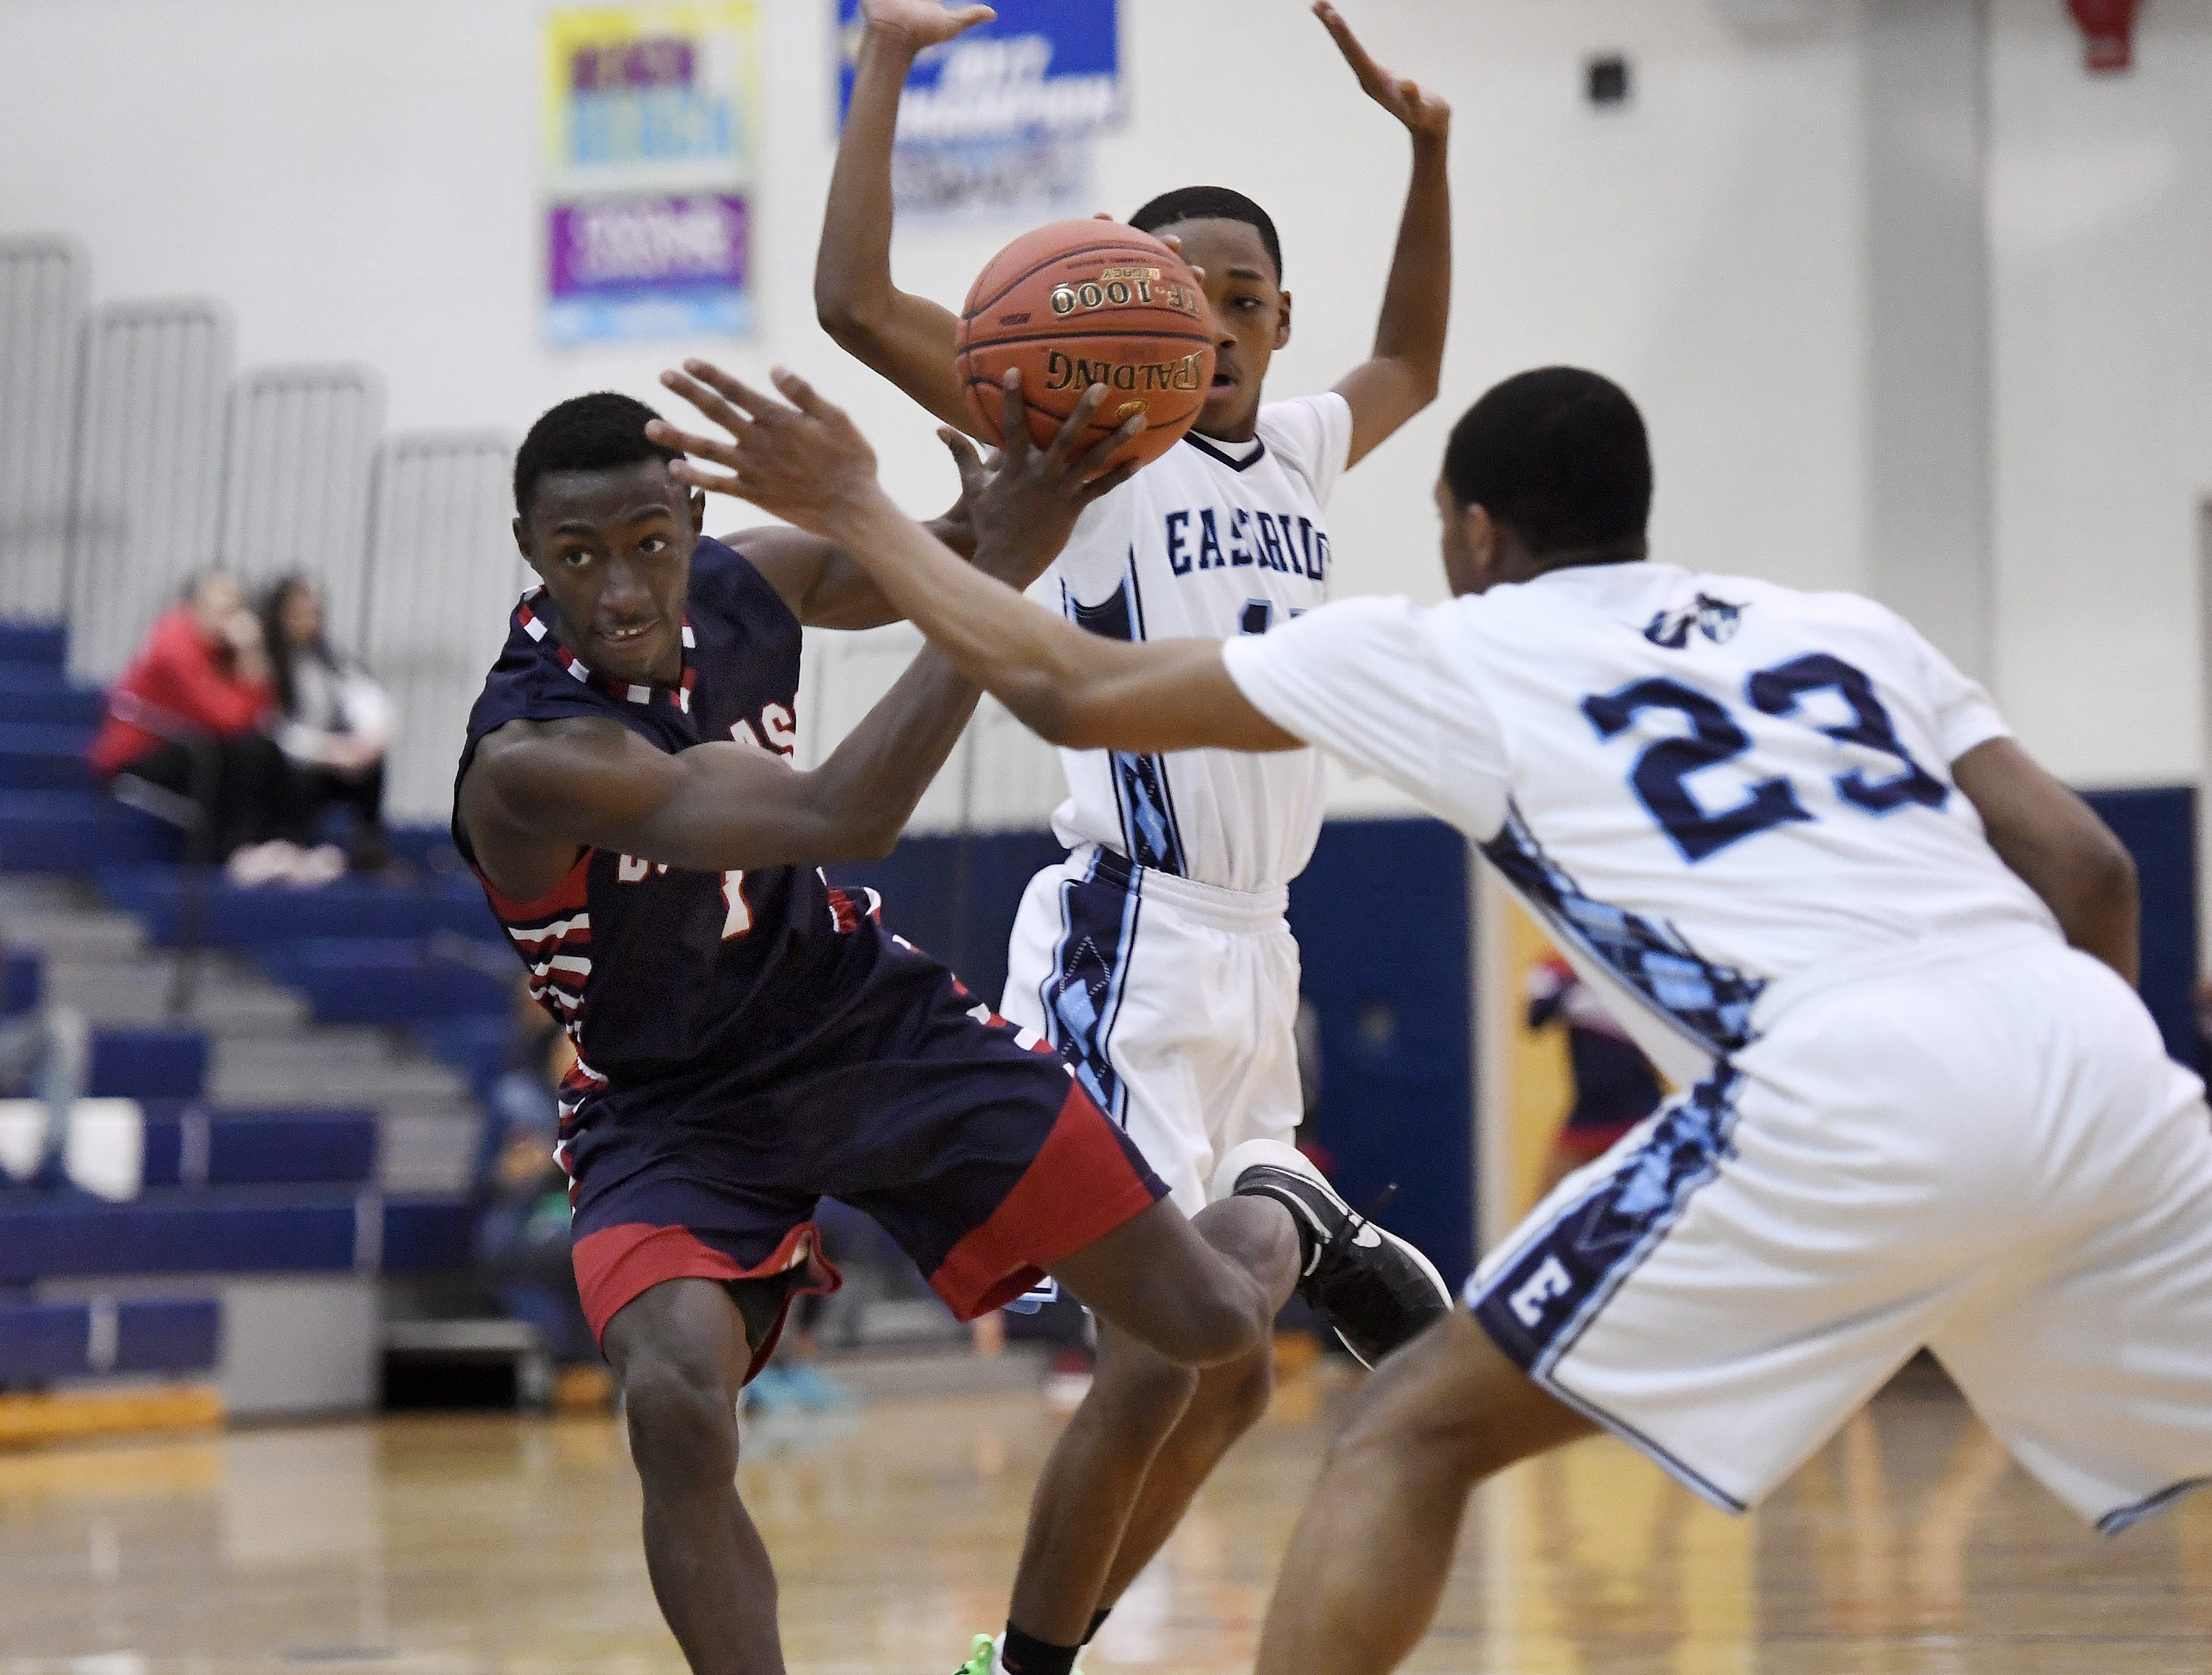 NE Douglass' Maurice Glenn tries to keep control of ball during the finals of the Al Masino Memorial Tip-Off Tournament at Eastridge High School.